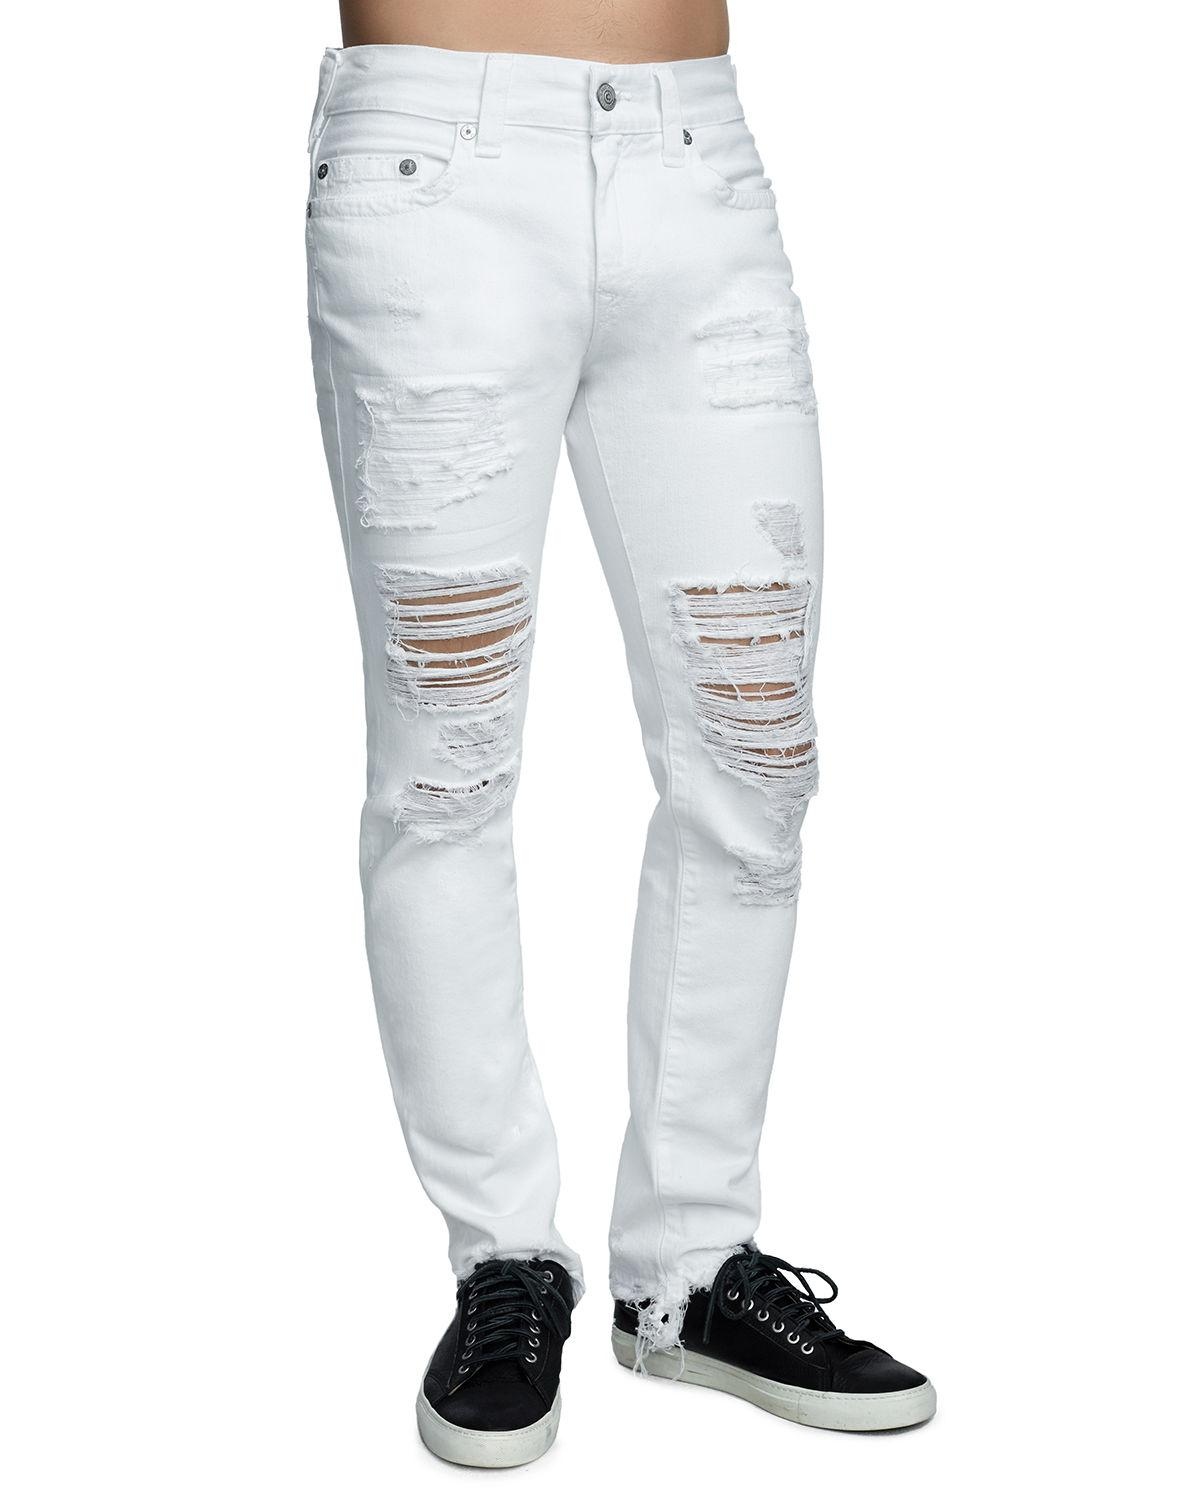 b97ca07149e Lyst - True Religion Men s Rocco Skinny Destroyed Denim Jeans in ...